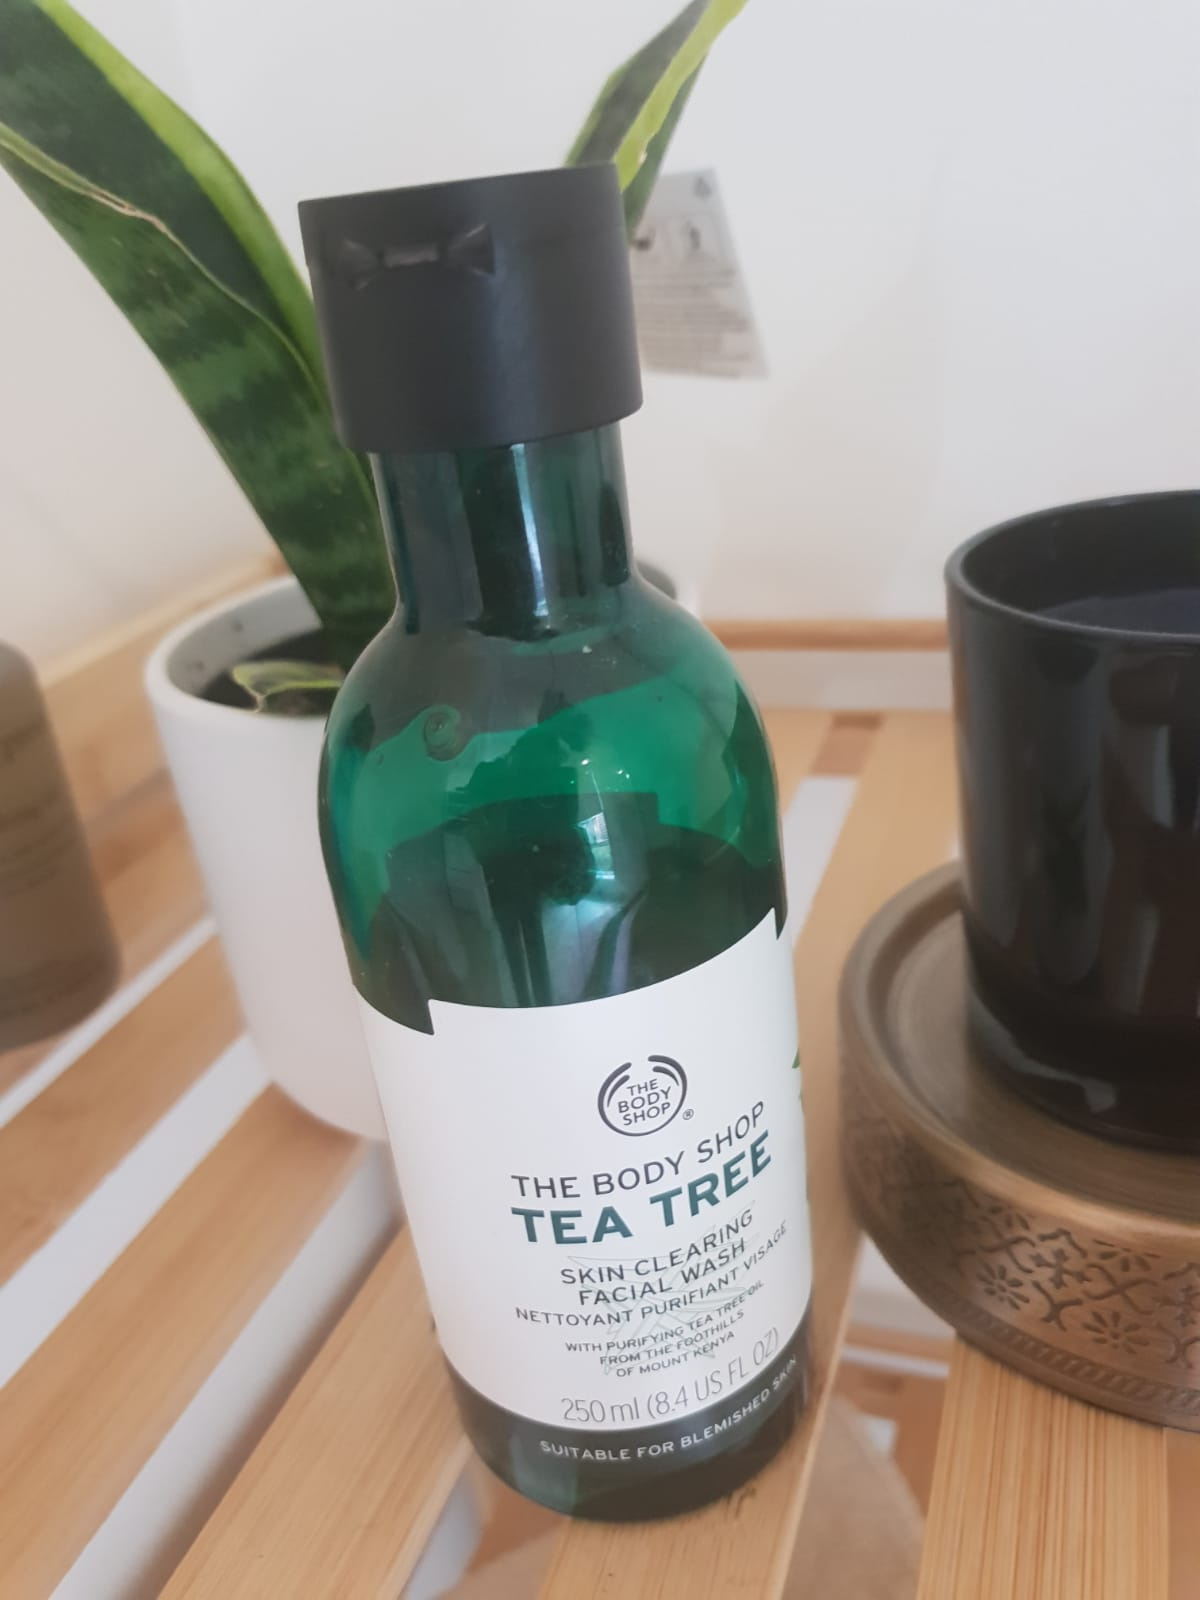 The Body Shop Tea Tree Skin Clearing Facial Wash-Goodness of tea Tree-By poonam_kakkar